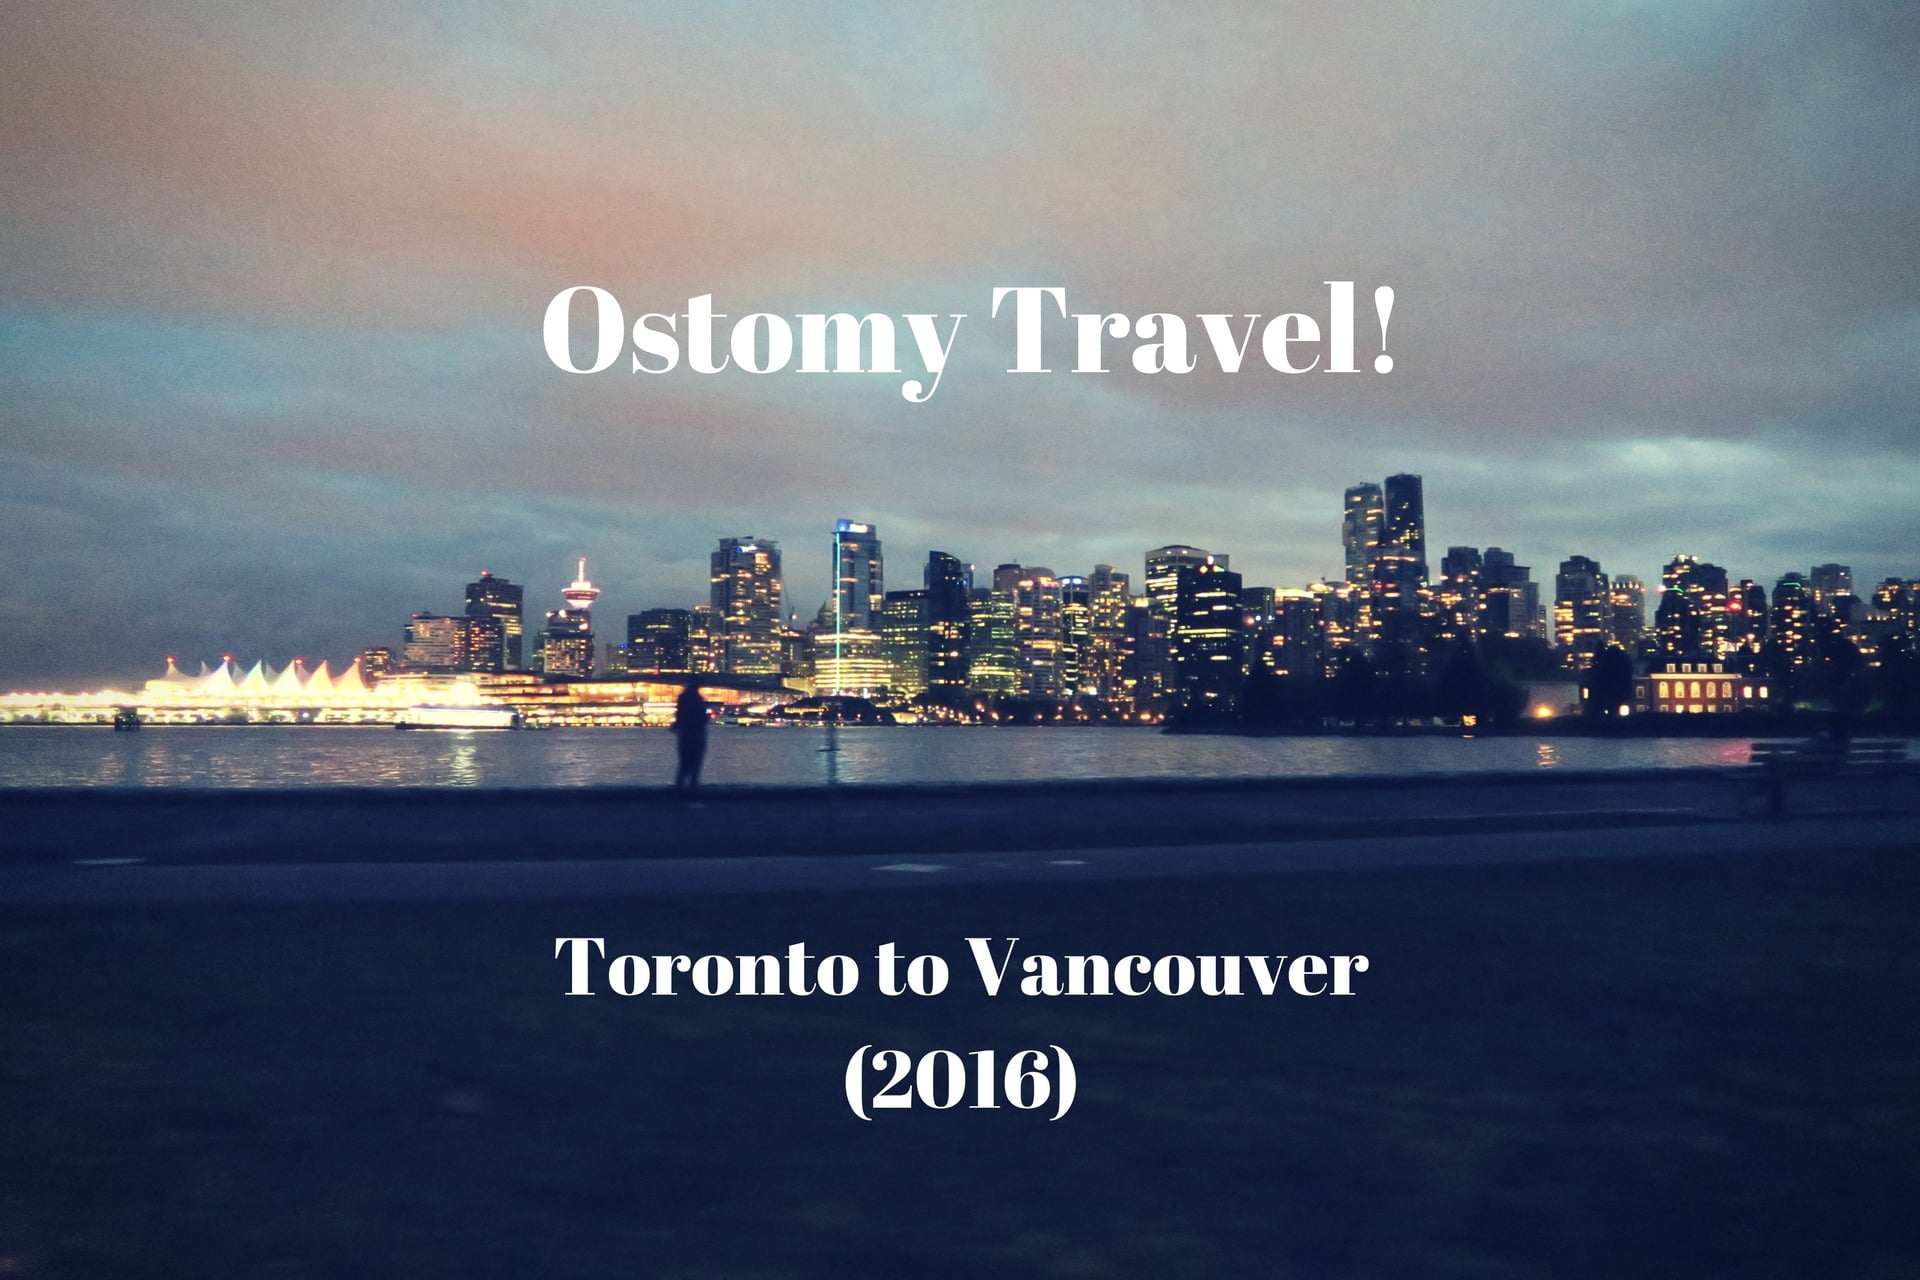 ostomy-travel-header